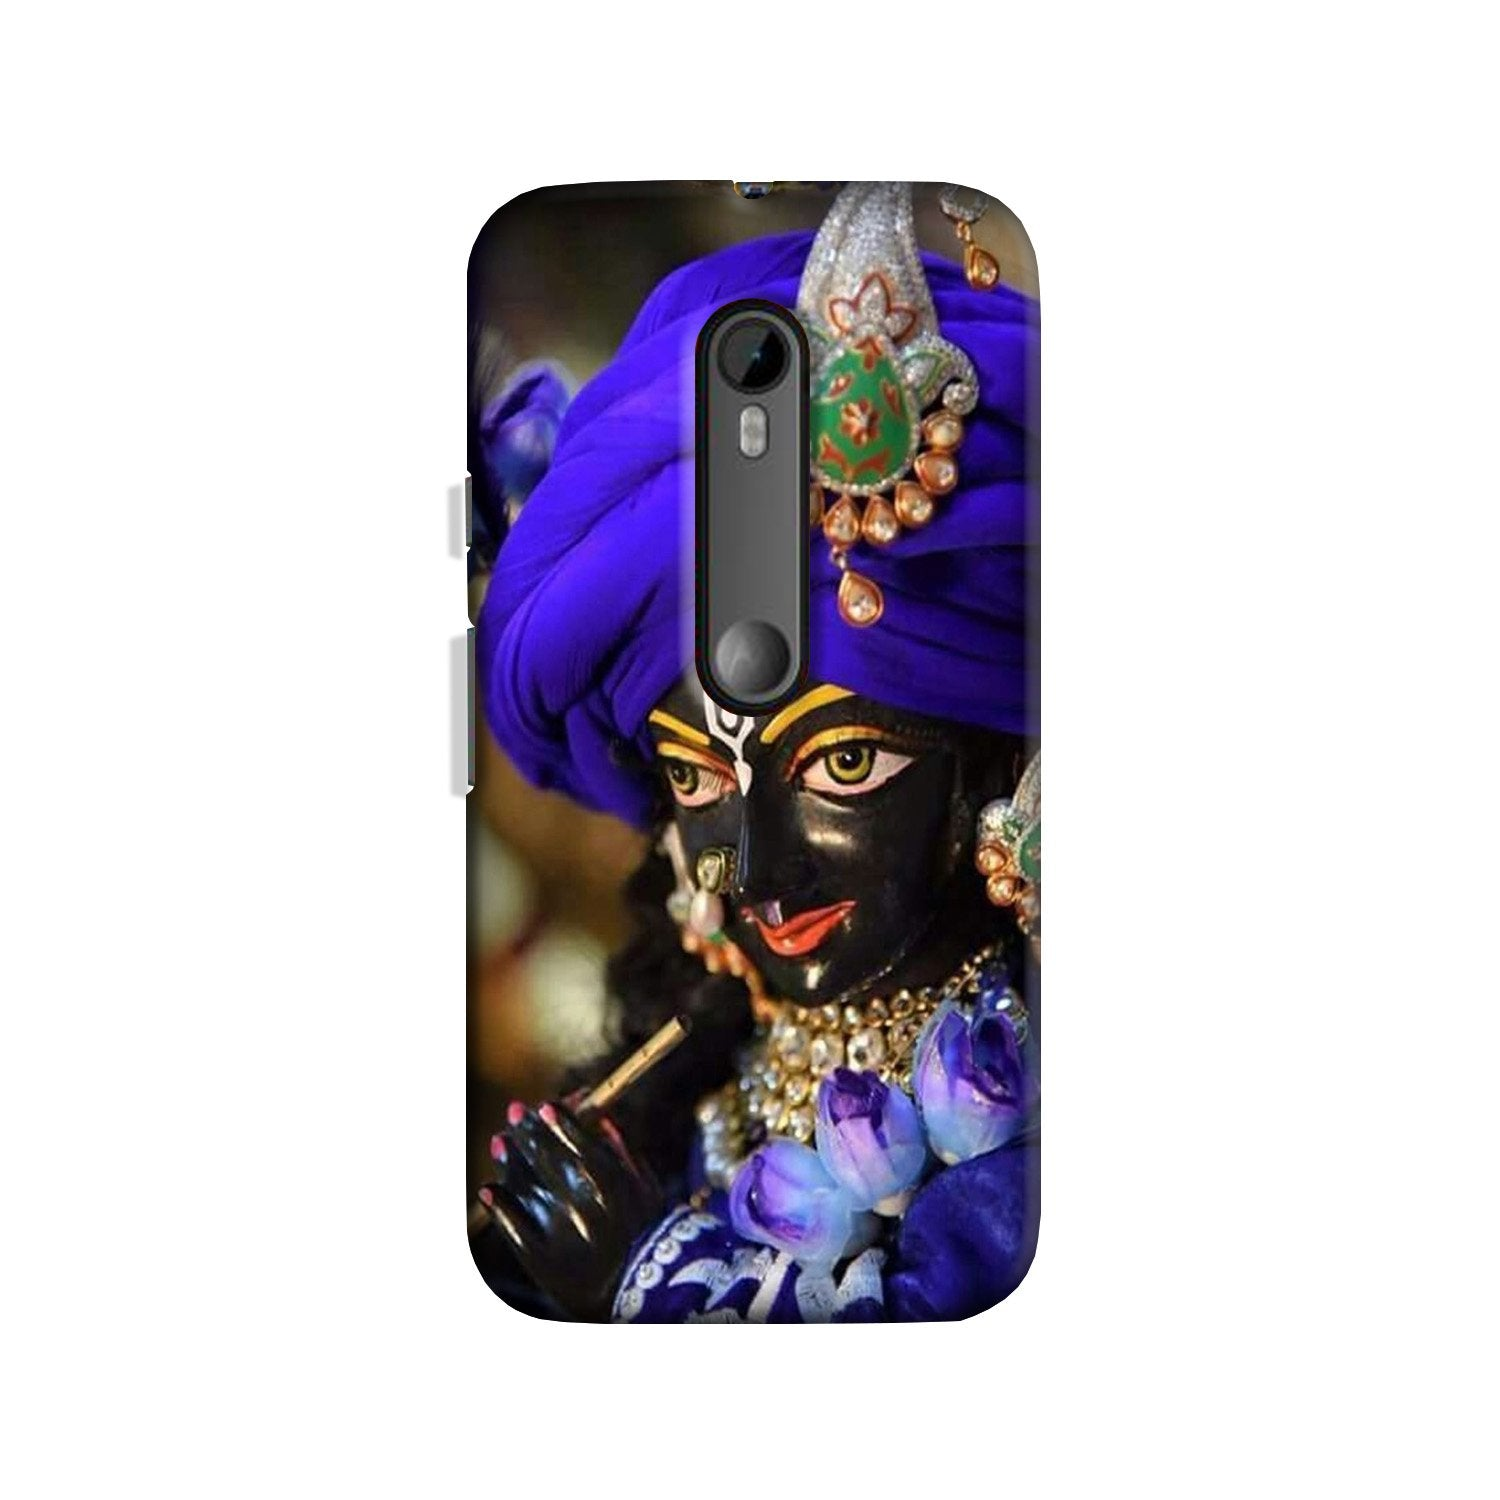 Lord Krishna4 Case for Moto G 3rd Gen